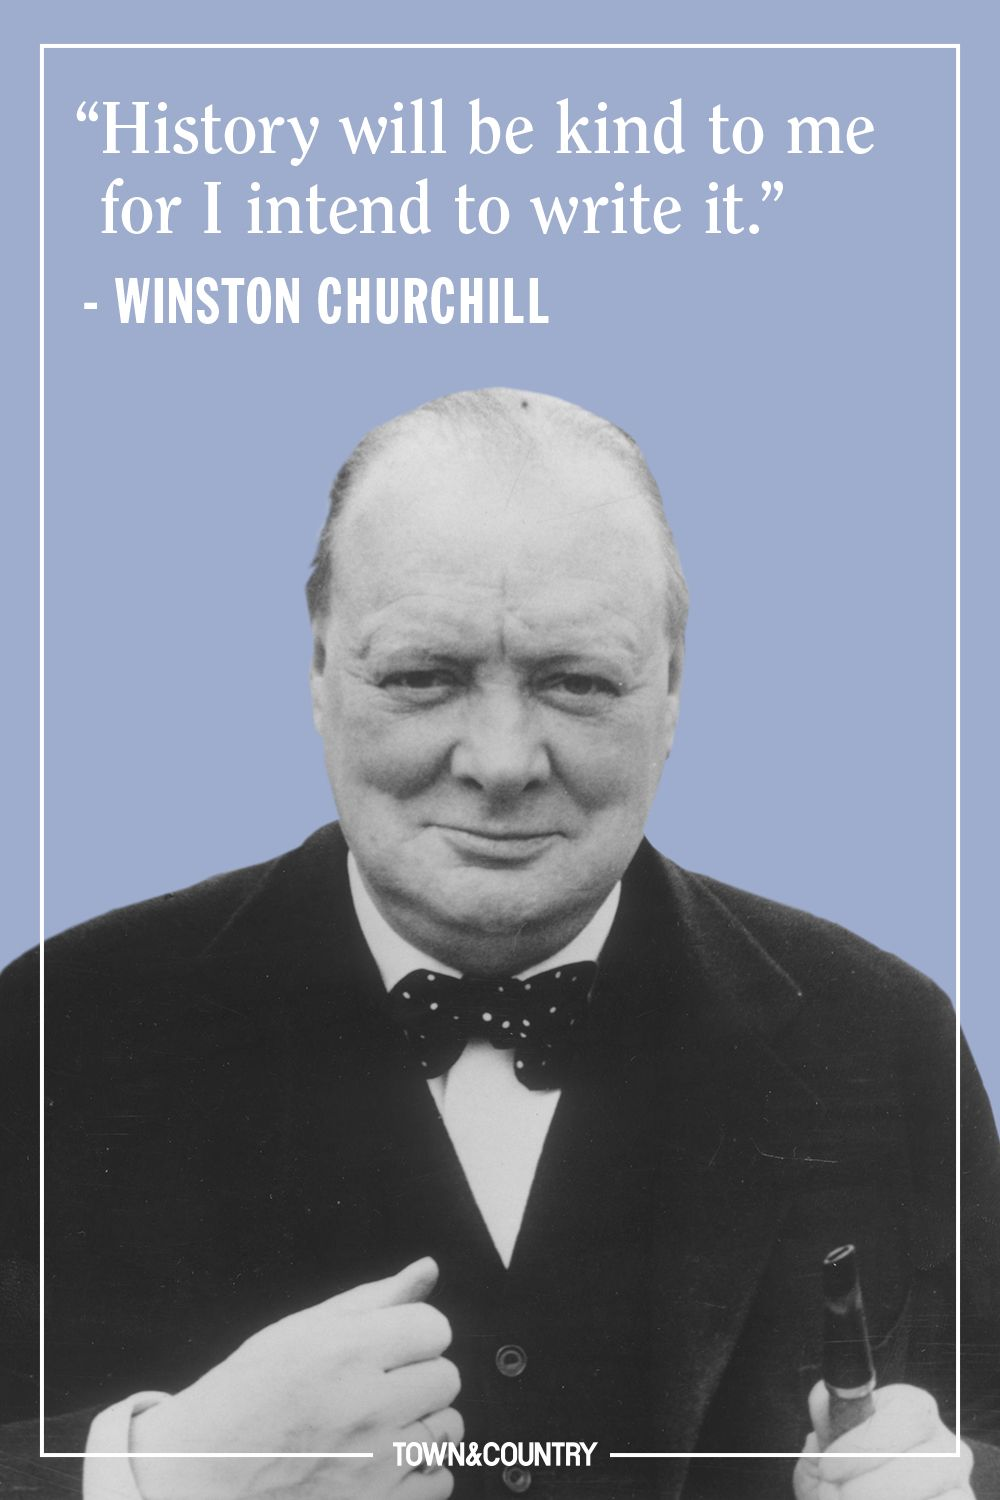 Top 11 Winston Churchill Quotes - Famous Quotes by Winston Churchill